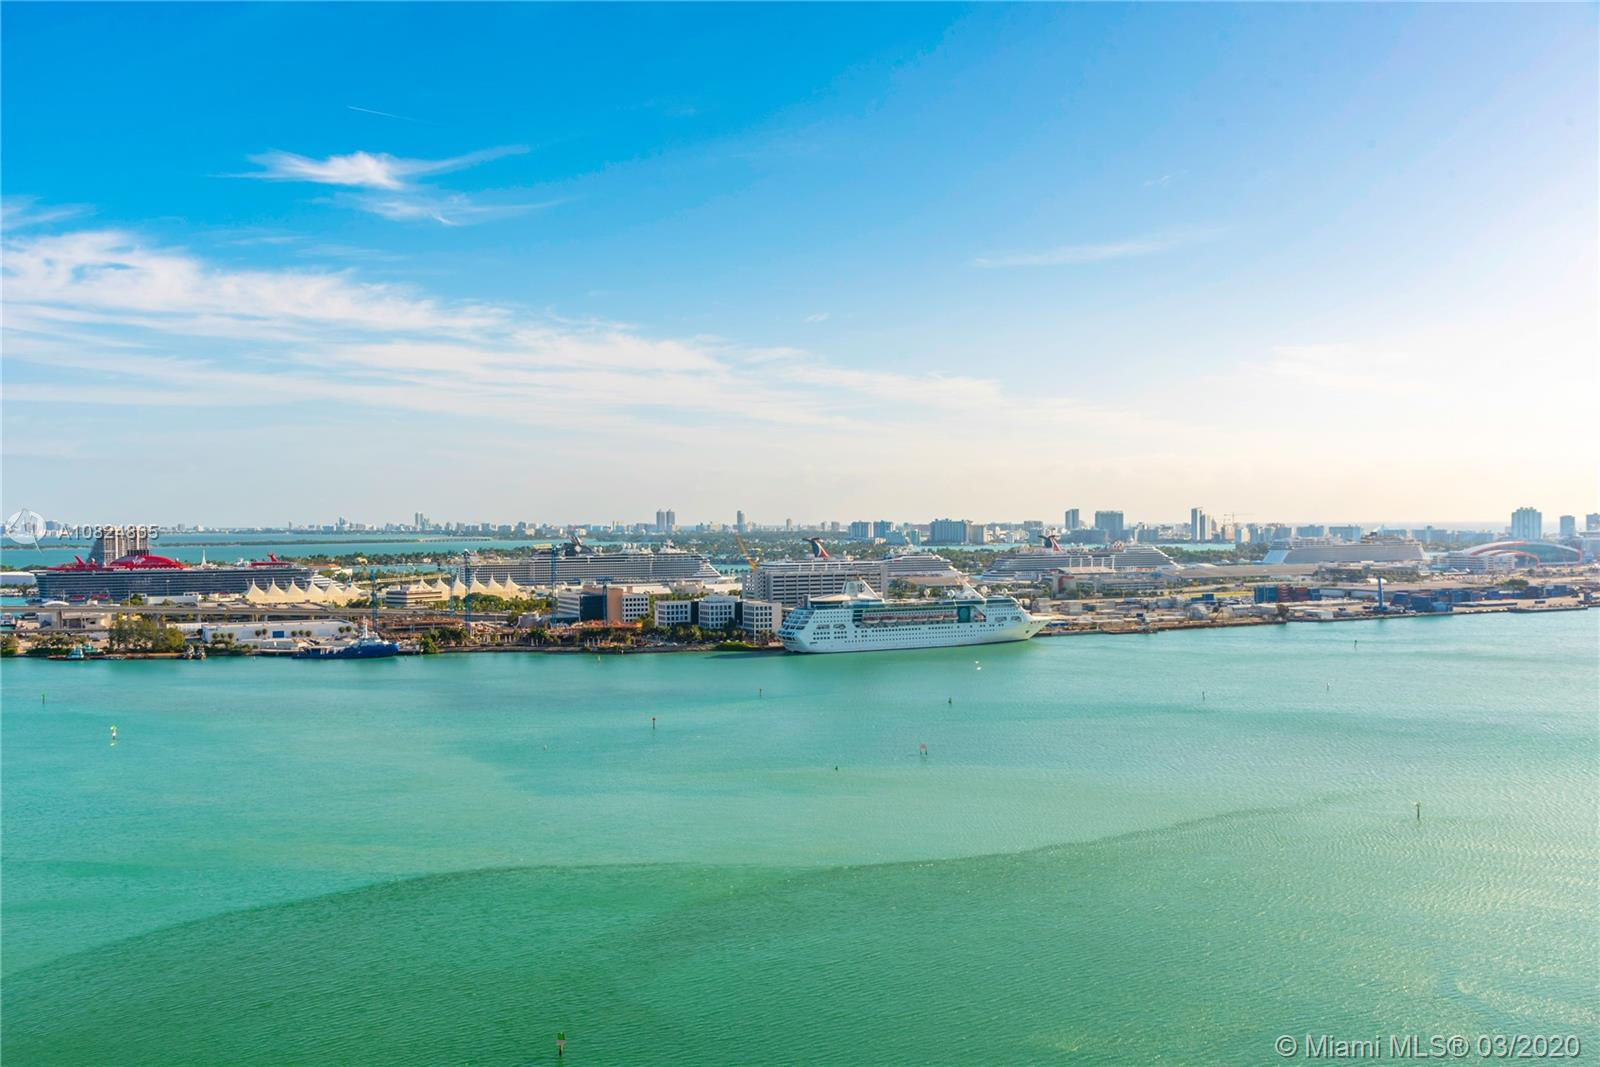 Immaculate 3 bedrooms 3.5 bathrooms flow-through unit with direct city and bay views. Asia is a luxu